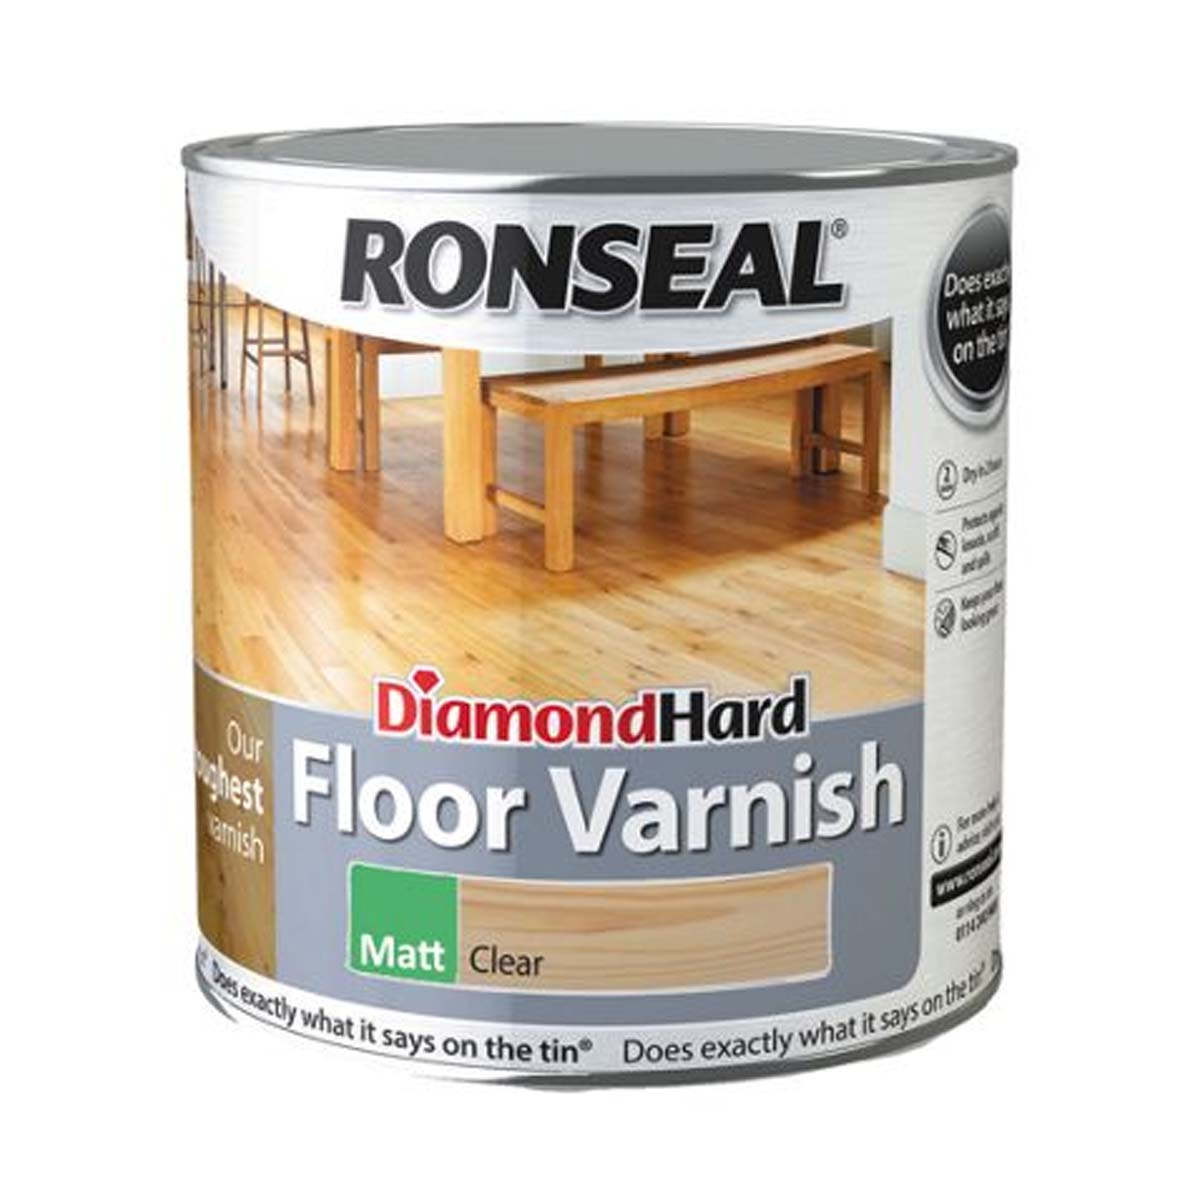 Ronseal Diamond Hard Floor Varnish Clear Matt 2.5L (37539)